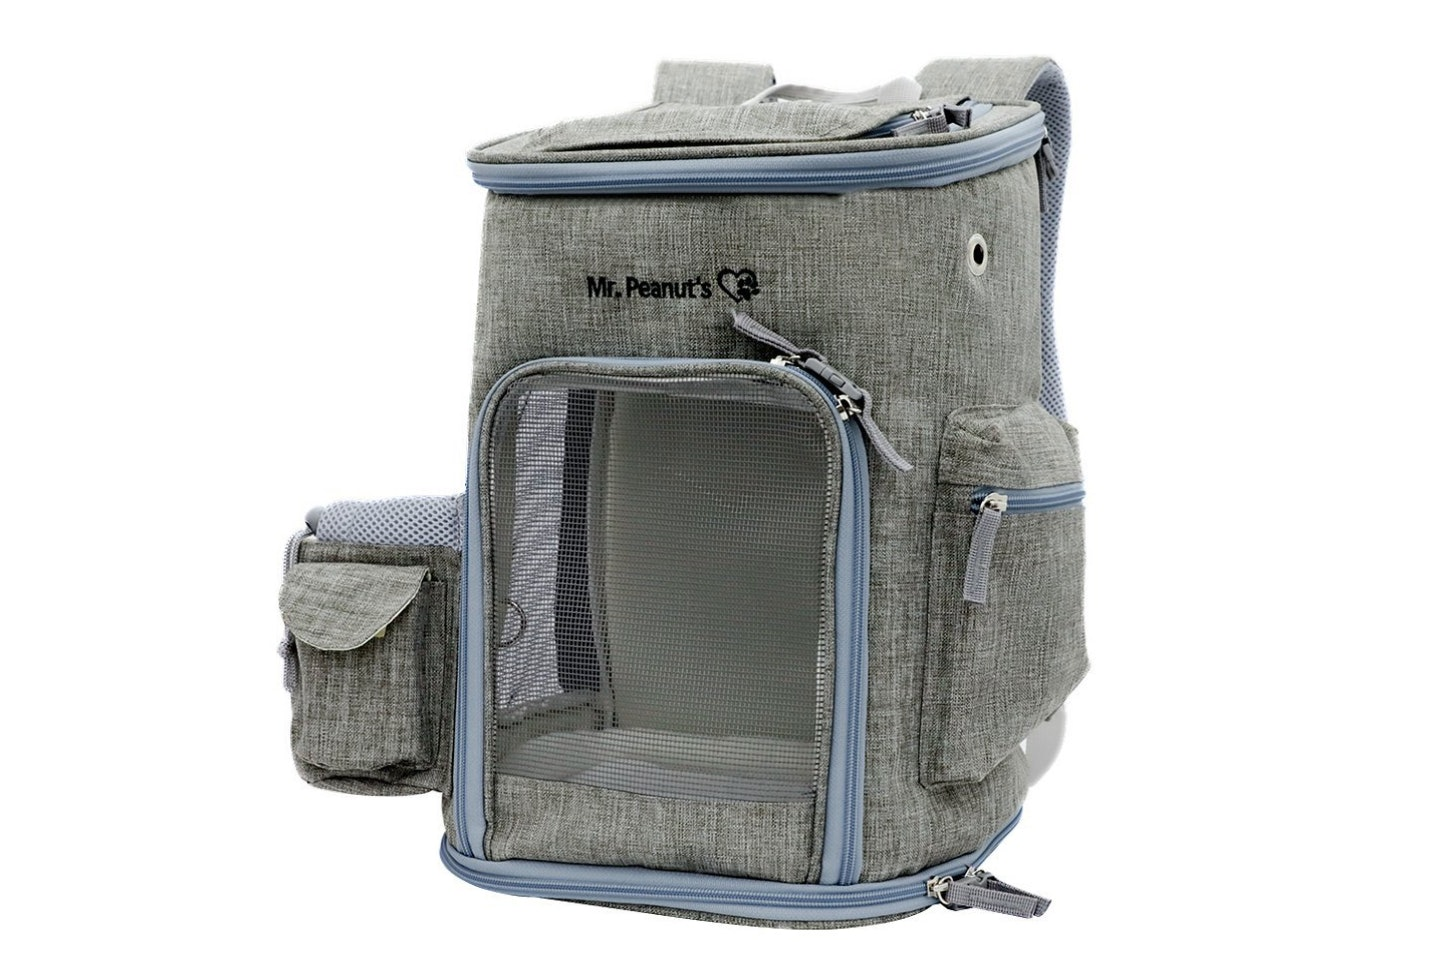 218a40e1b16d The 5 Best Airline Approved Pet Carriers For Under The Seat